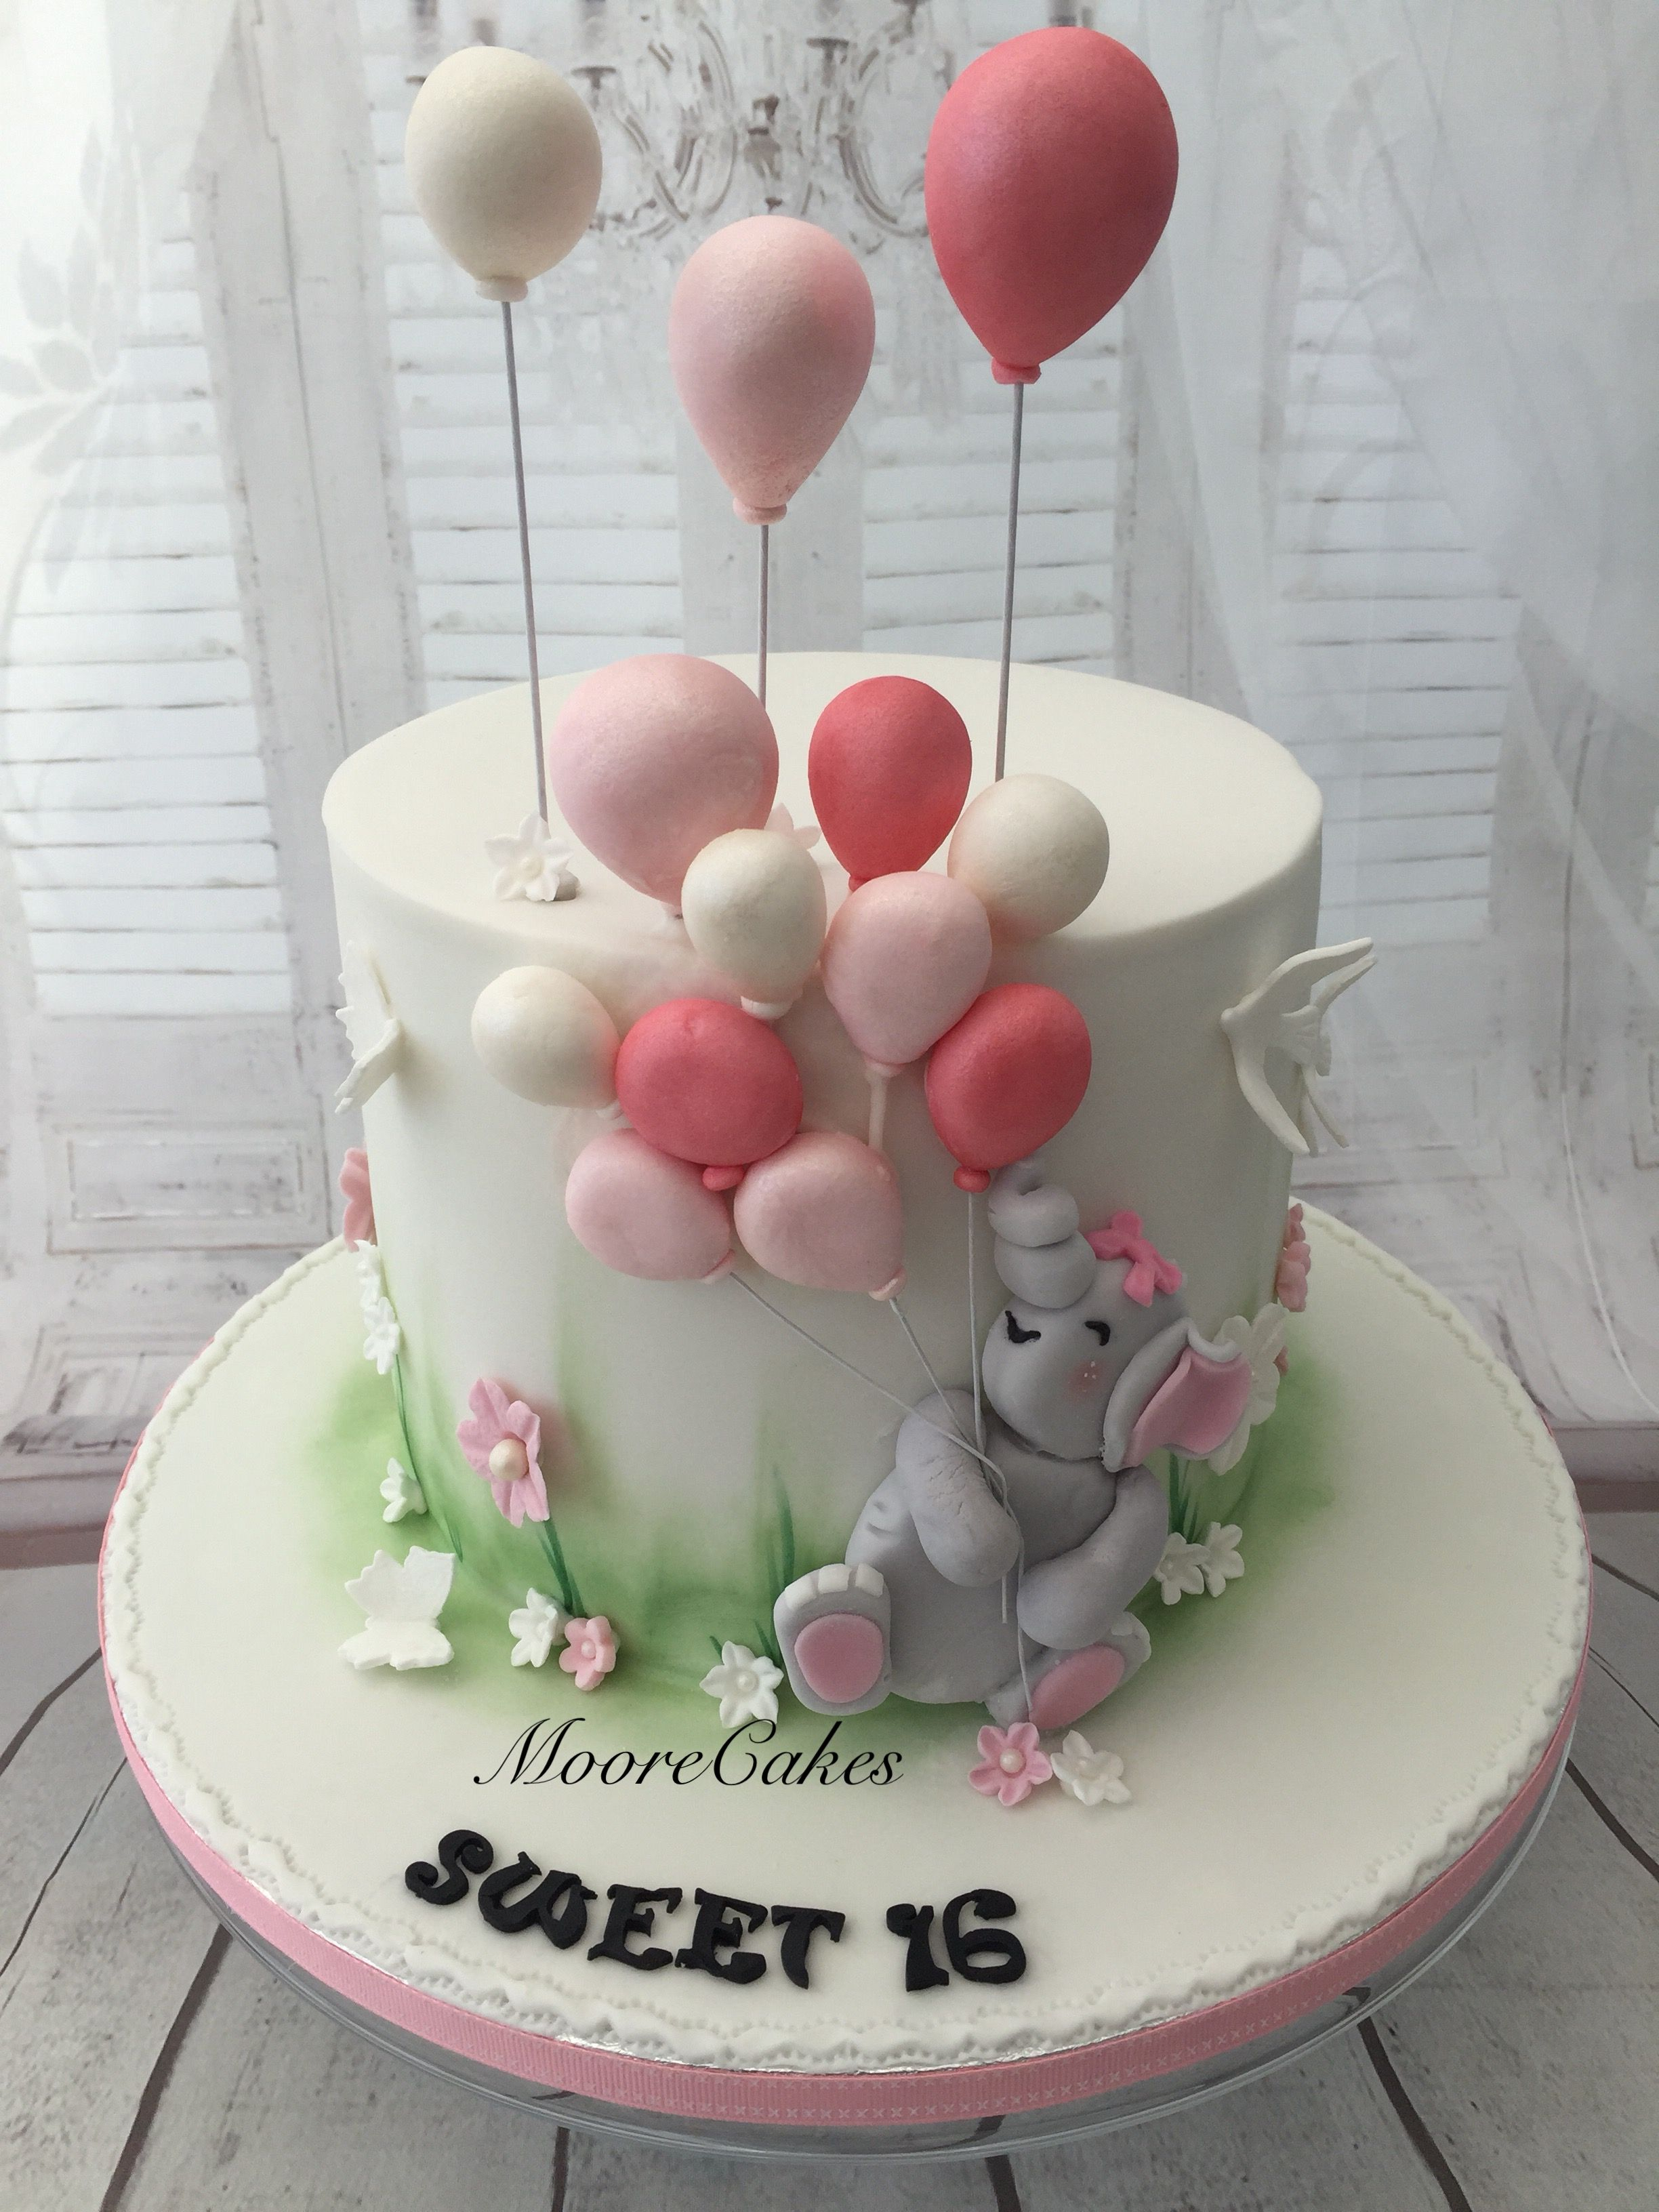 Elephant Birthday Cakes Cute Elephant Birthday Cake Torten Pinterest Birthday Cakes